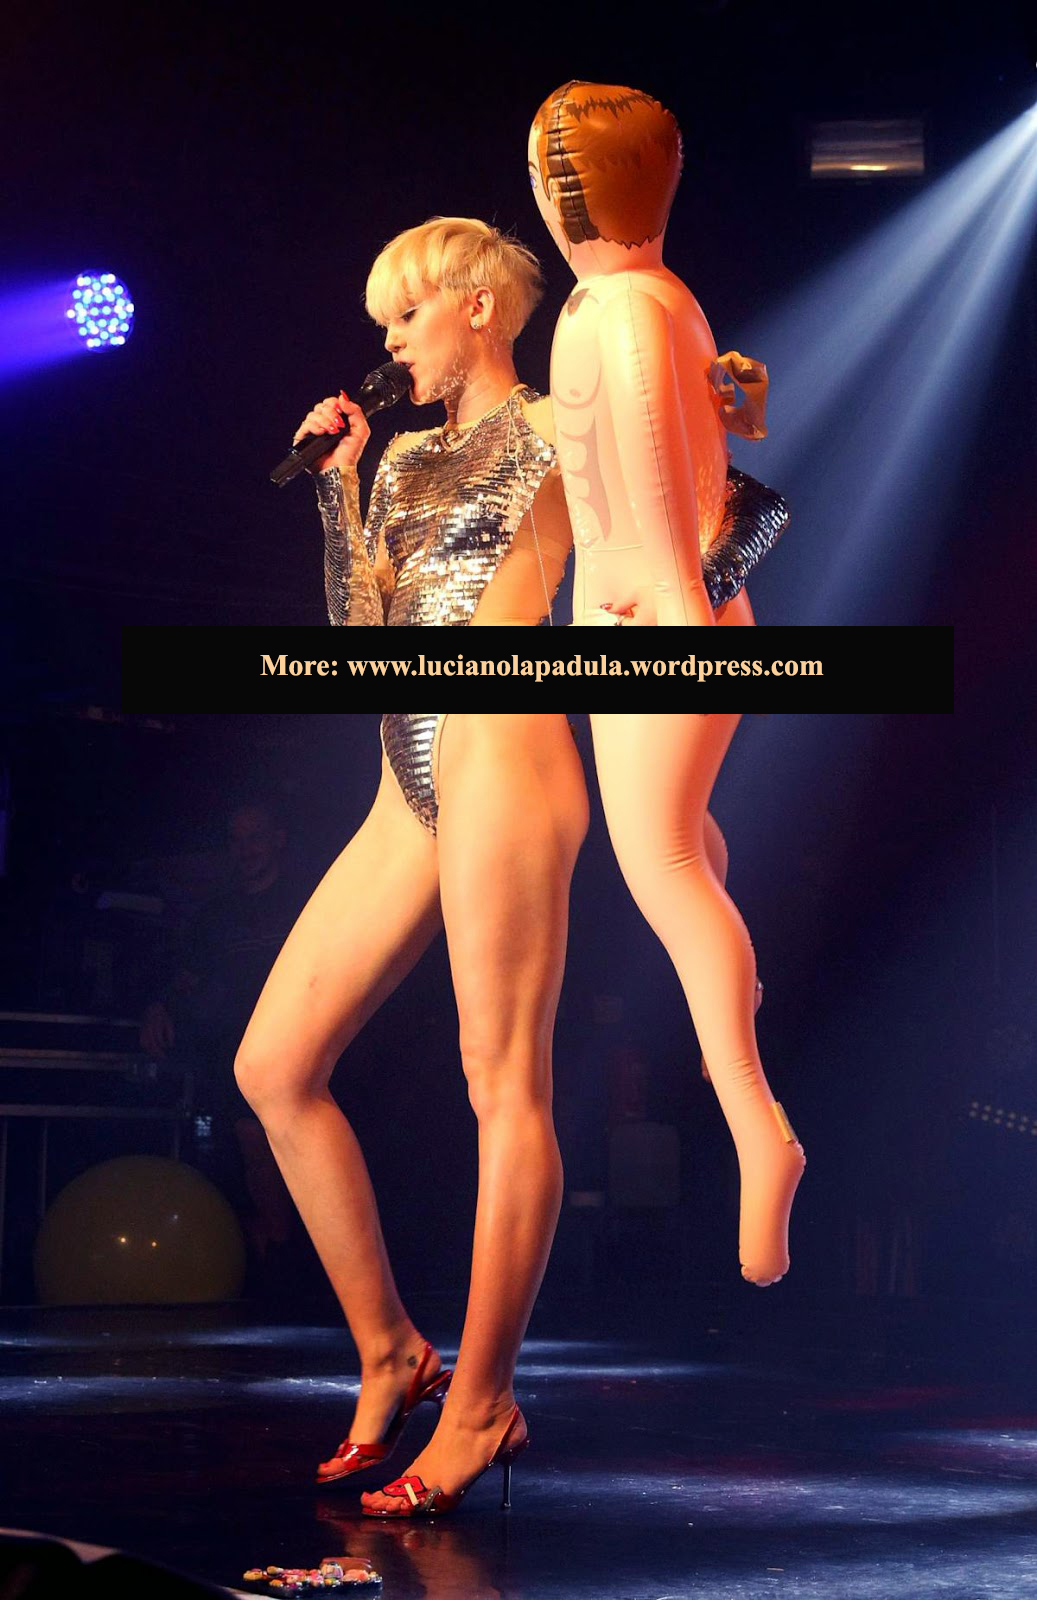 miley-cyrus-sex-doll-pic